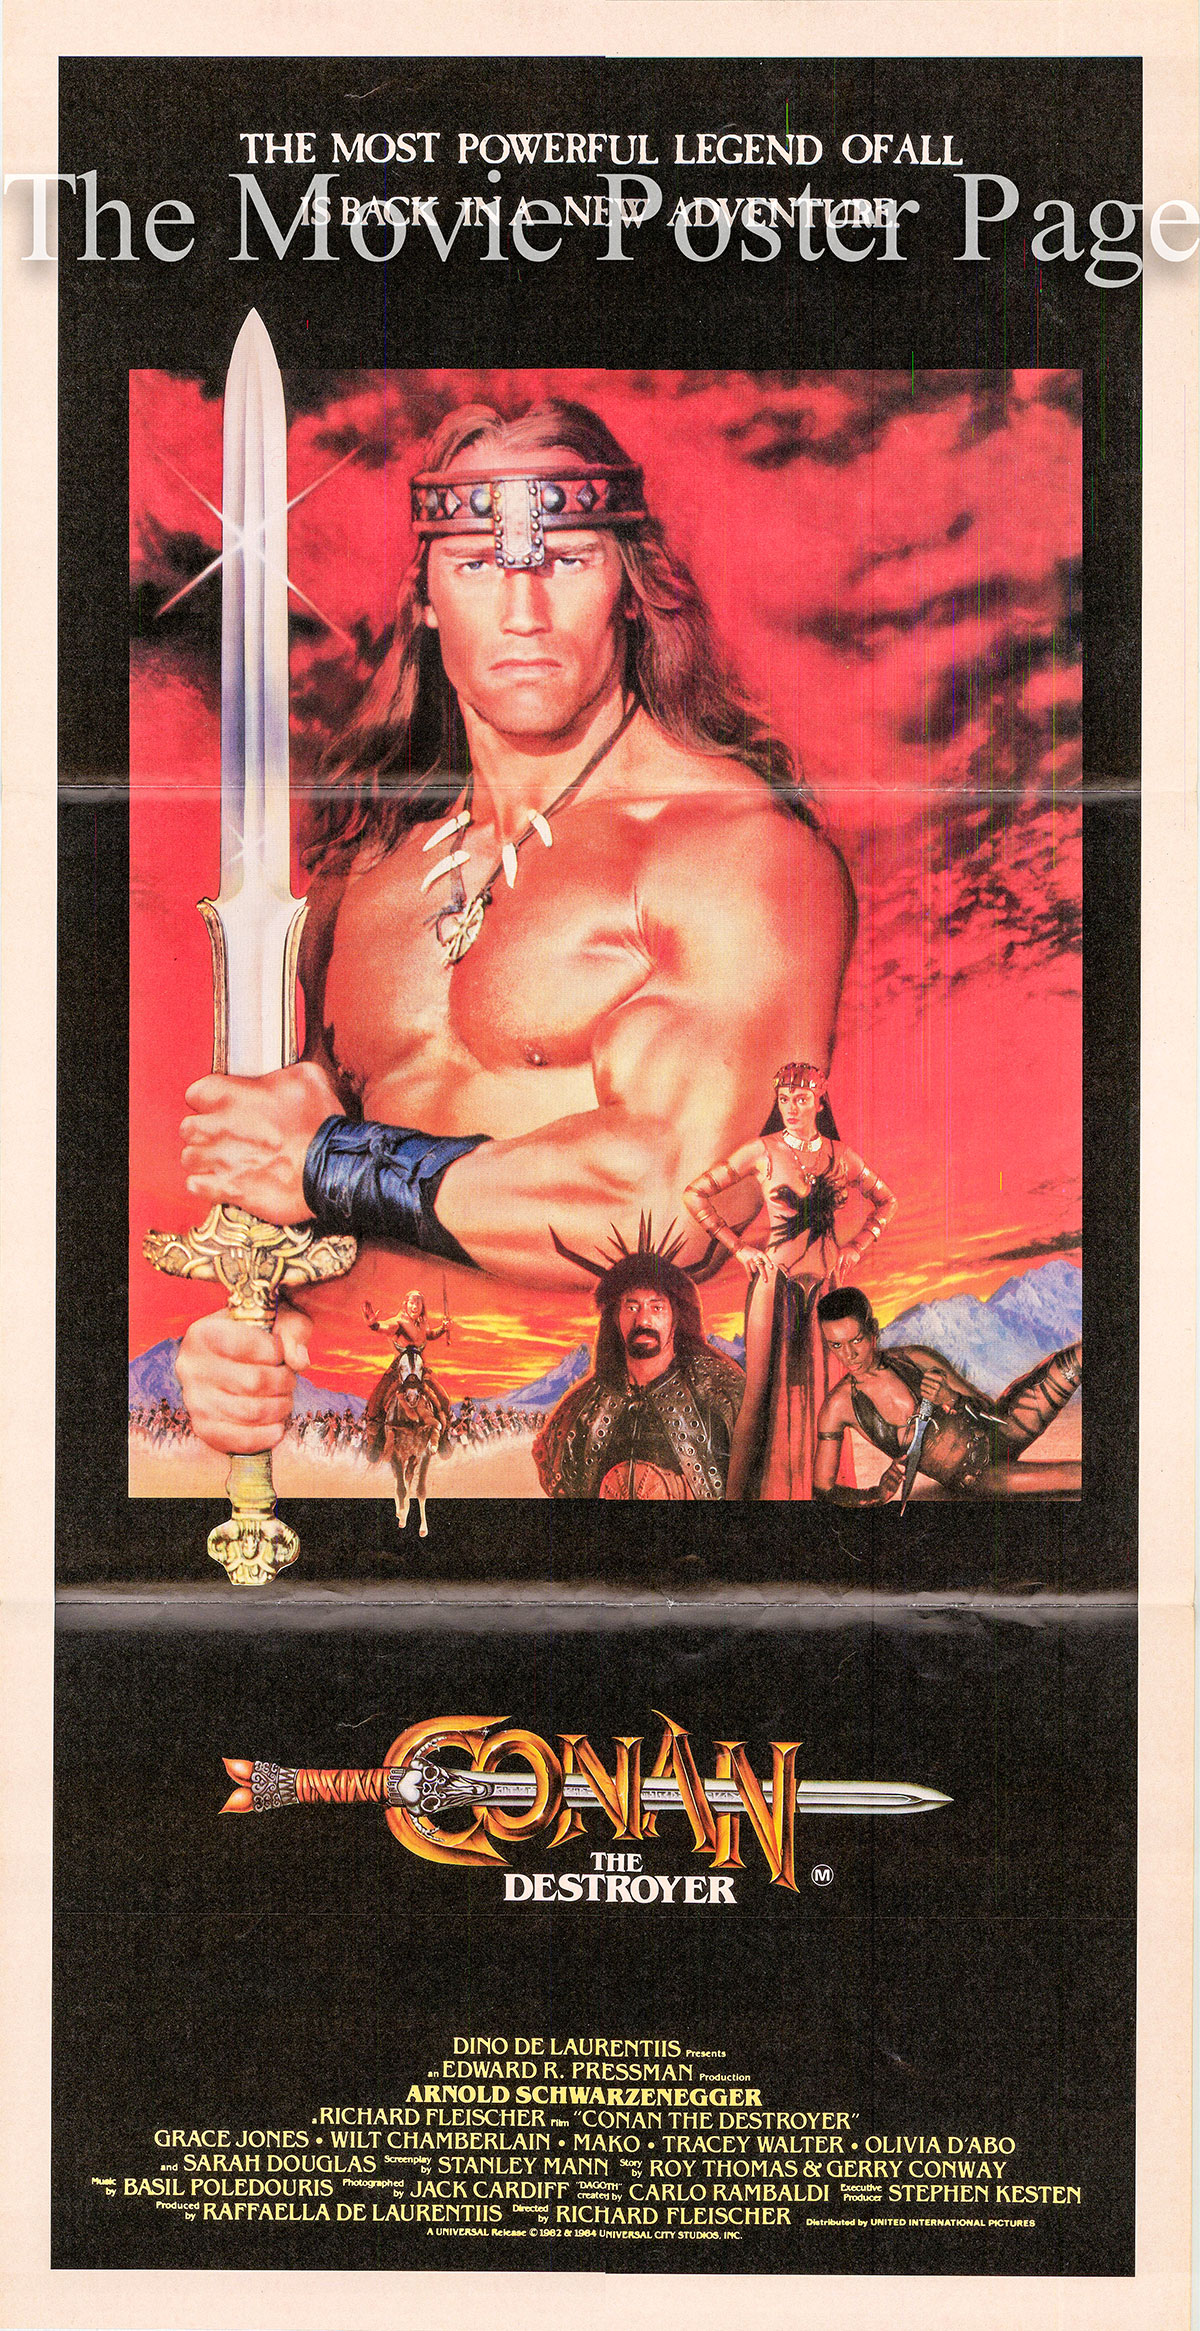 Pictured is an Australian Day Bill poster for the 1984 Richard Fleischer film Conan the Destroyer starring Arnold Schwarzenegger.